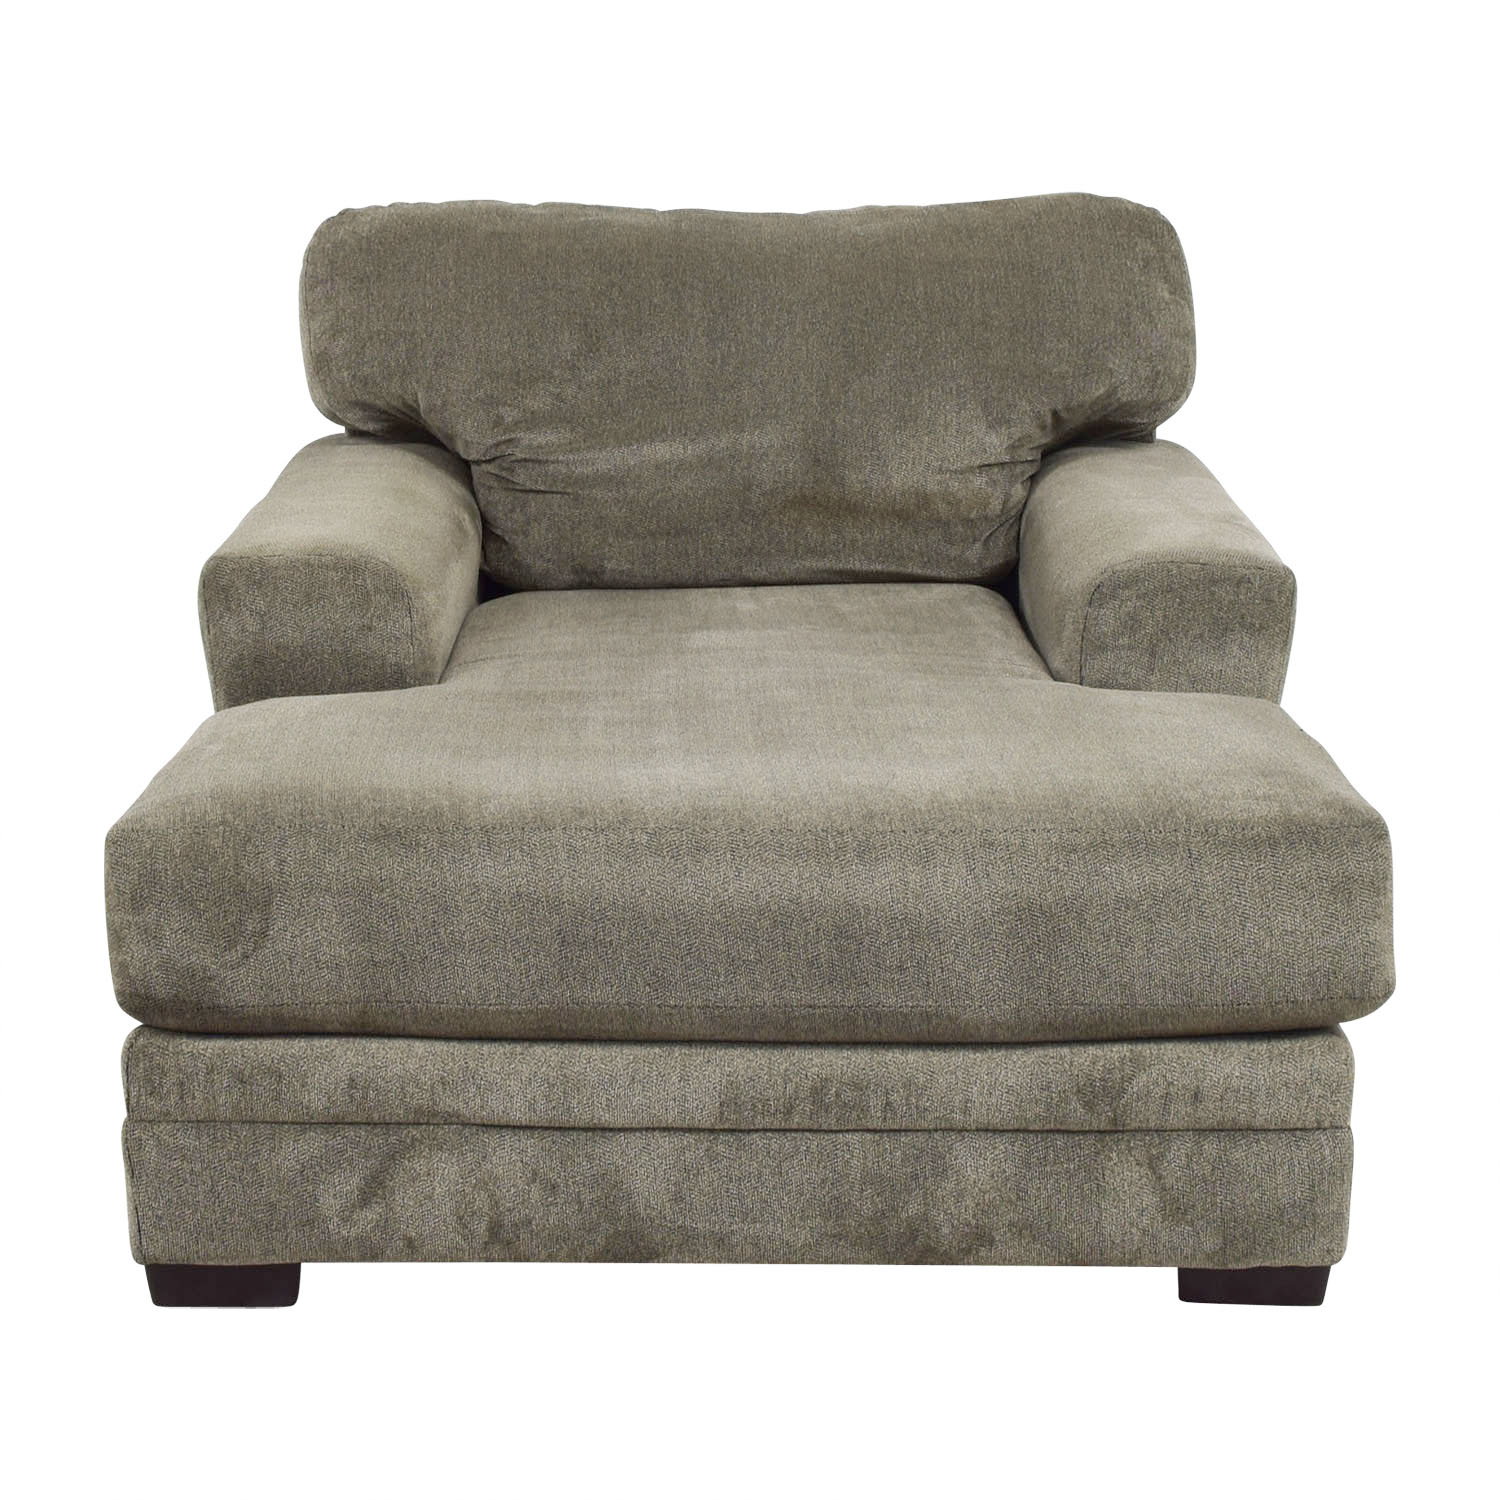 Bobs Furniture Bobs Furniture Grey Chaise Lounge on sale